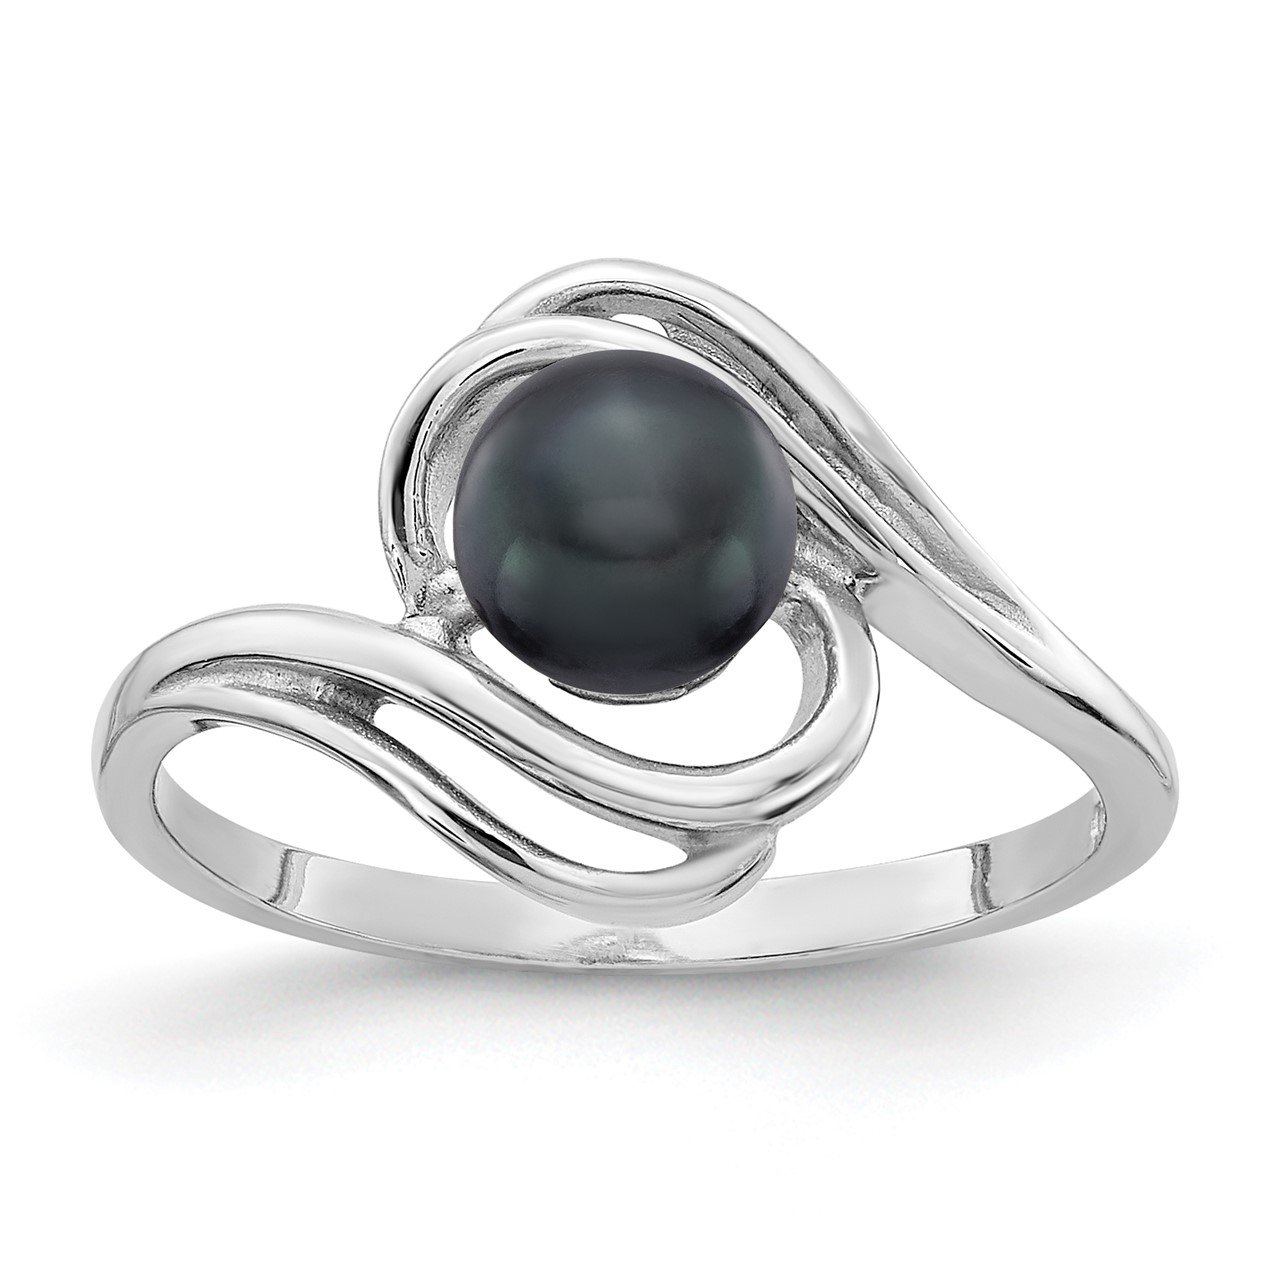 14k White Gold 5.5mm Black FW Cultured Pearl ring